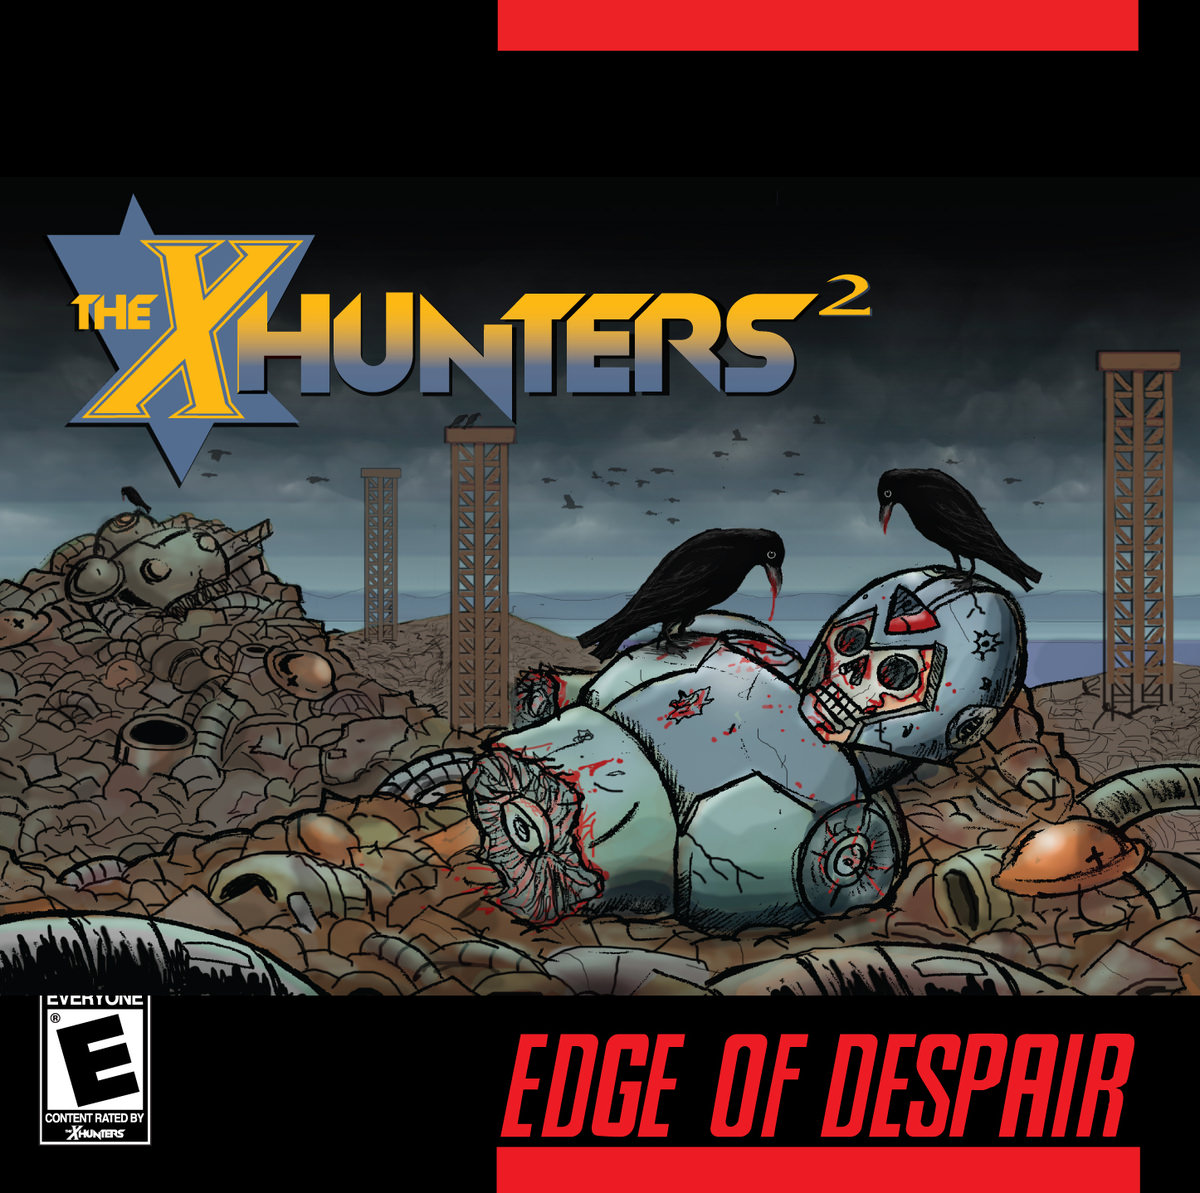 The X-Hunters - Edge of Despair